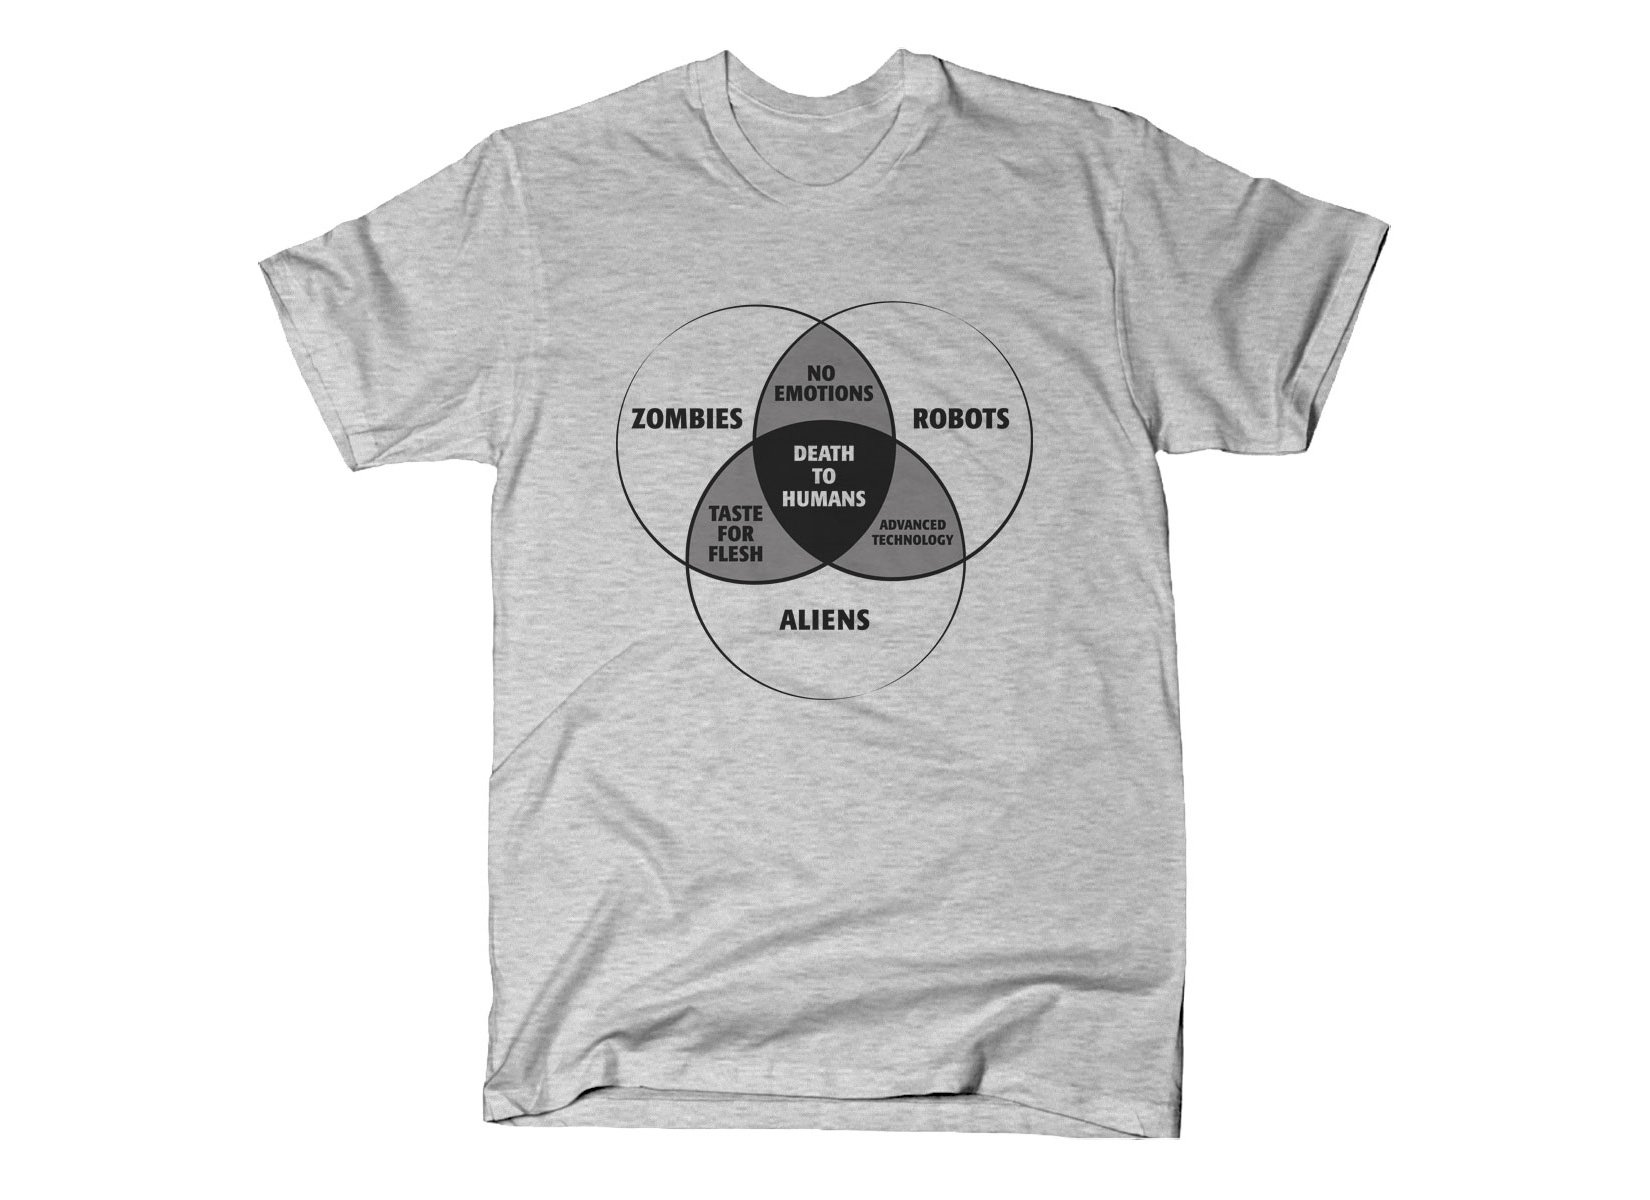 snorg_zombieveendiagram_1 zombies, robots, and aliens venn diagram t shirt snorgtees shirt diagram at n-0.co